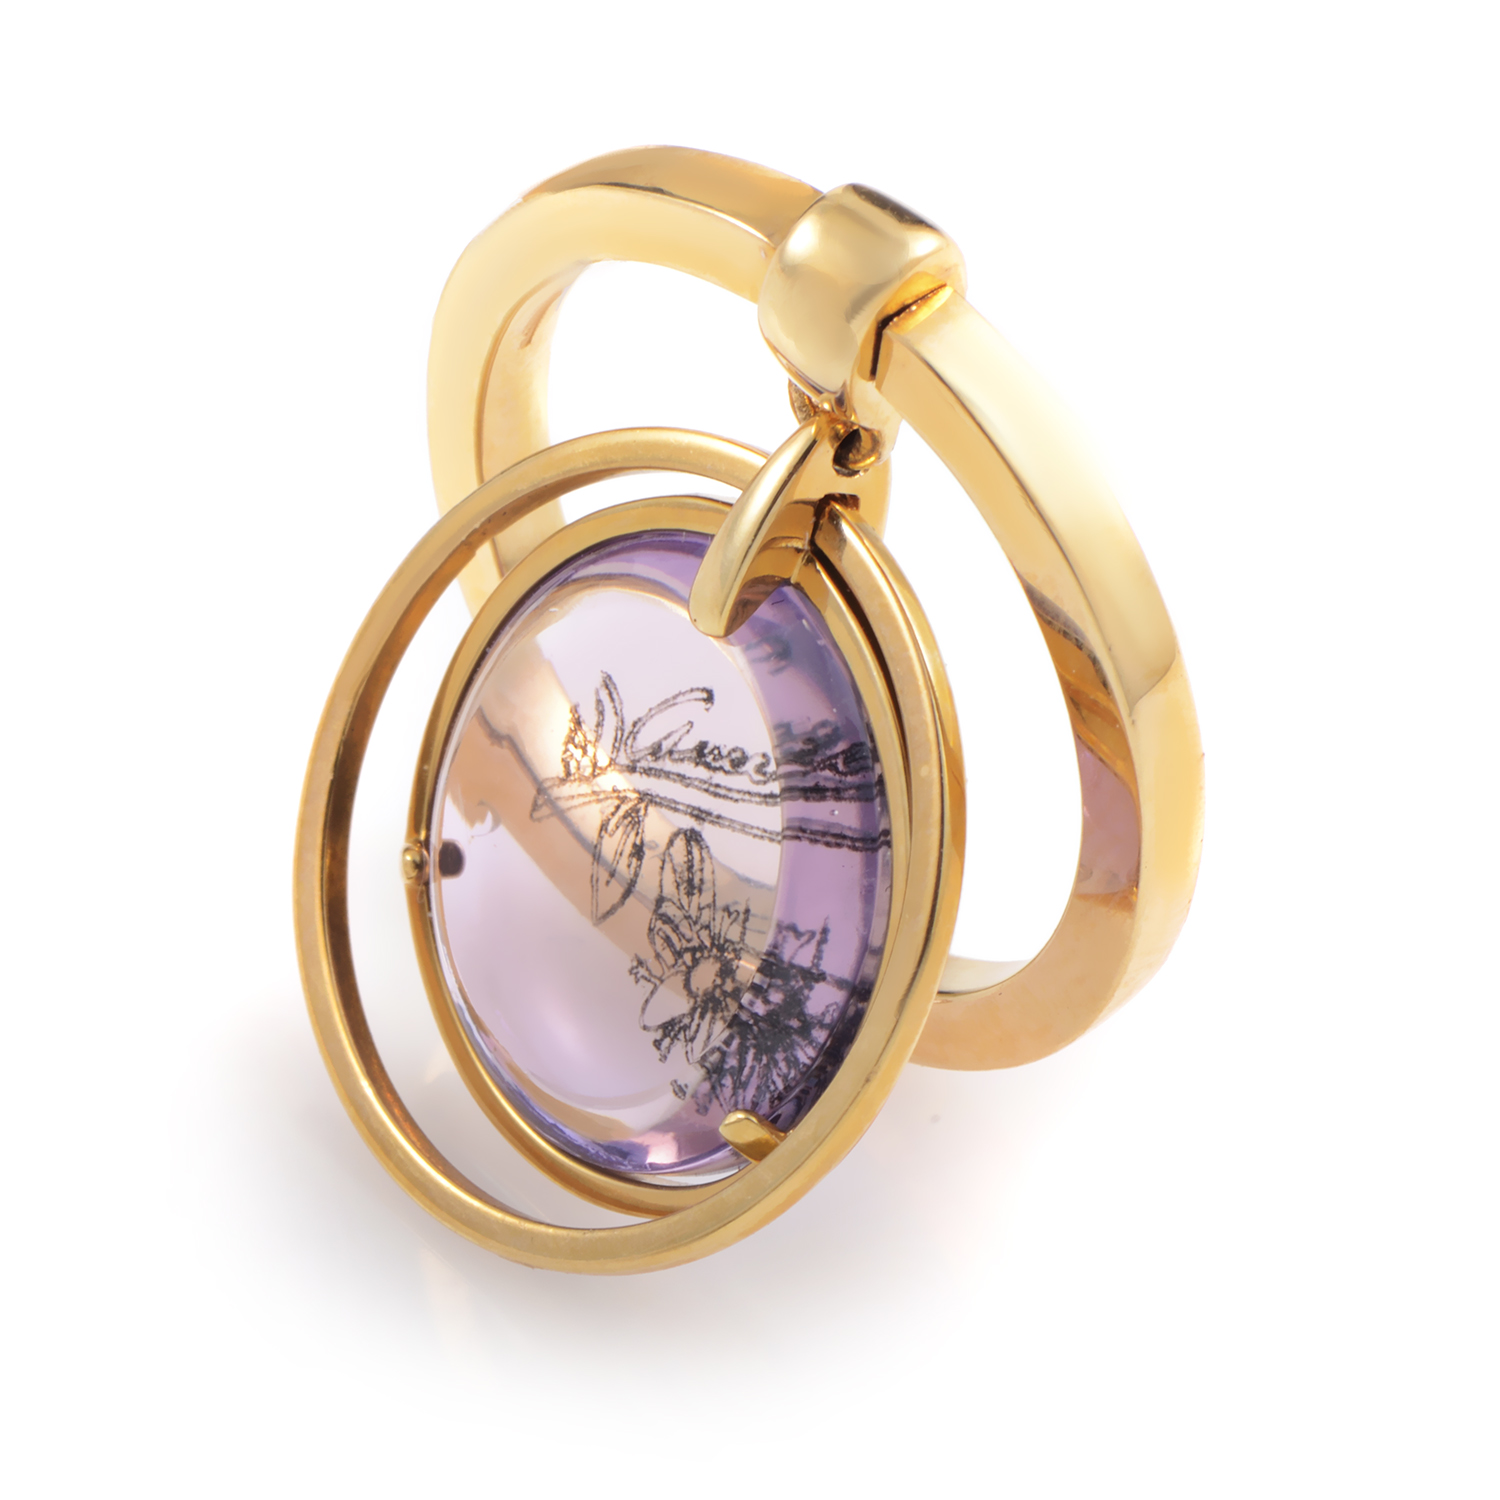 Flora Women's 18K Yellow Gold & Amethyst Charm Ring